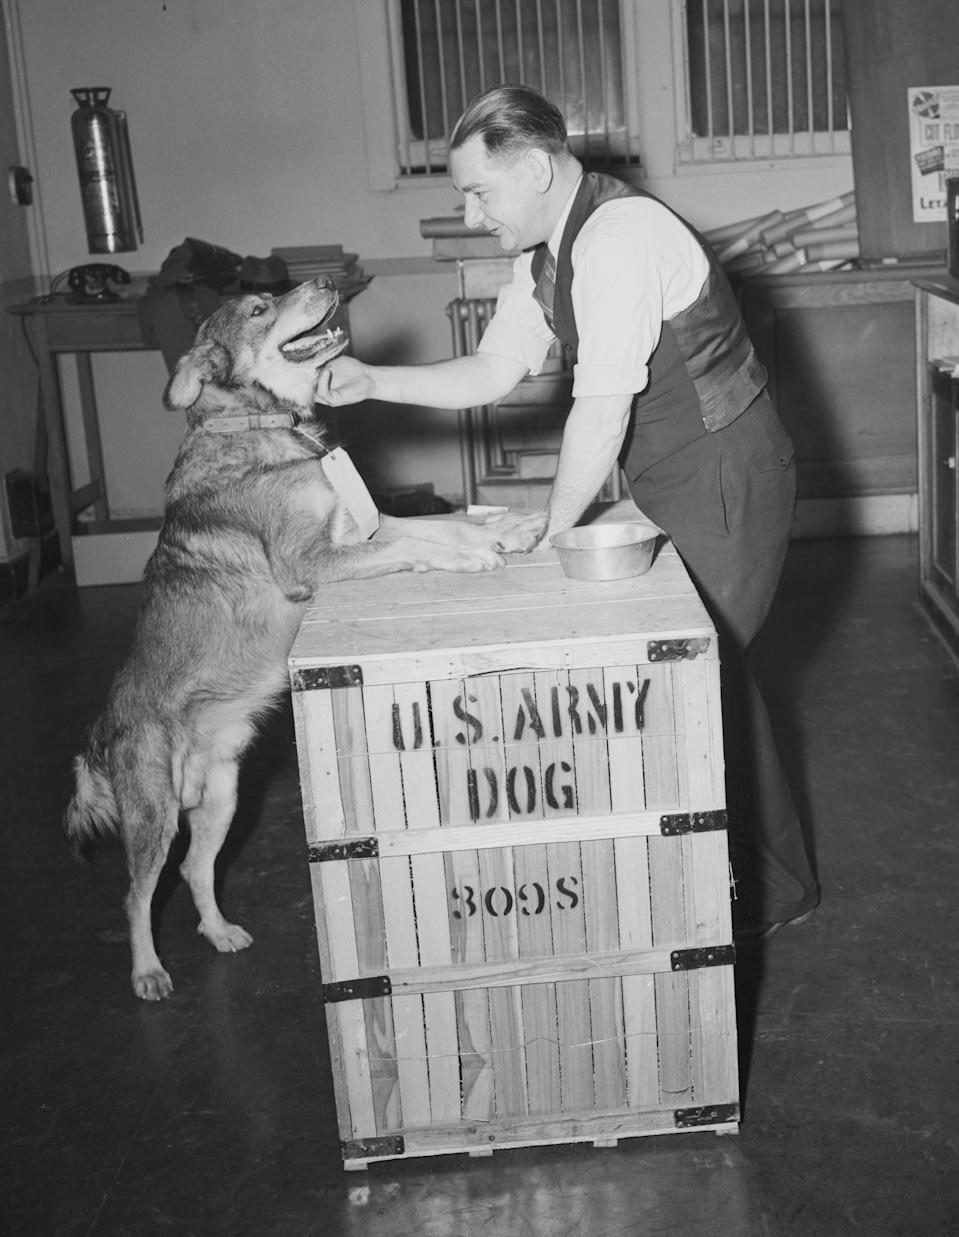 (Original Caption) Only Animal to Hold Silver Star. New York City: Chips, the mongrel dog who received a Silver Star for heroism in the invasion of Sicily, gets a friendly pat from William Wilson, Railway Express Co. employee, as he arrived in New York City this morning on his way home to Pleasantville, N.Y. Chips is the only animal to hold the award because just after he received it, the War Department ordered that only human beings would receive it. He will resume civilian life as the pet of Edward J. Wren and family, 26 Orchard St., Pleasantville.